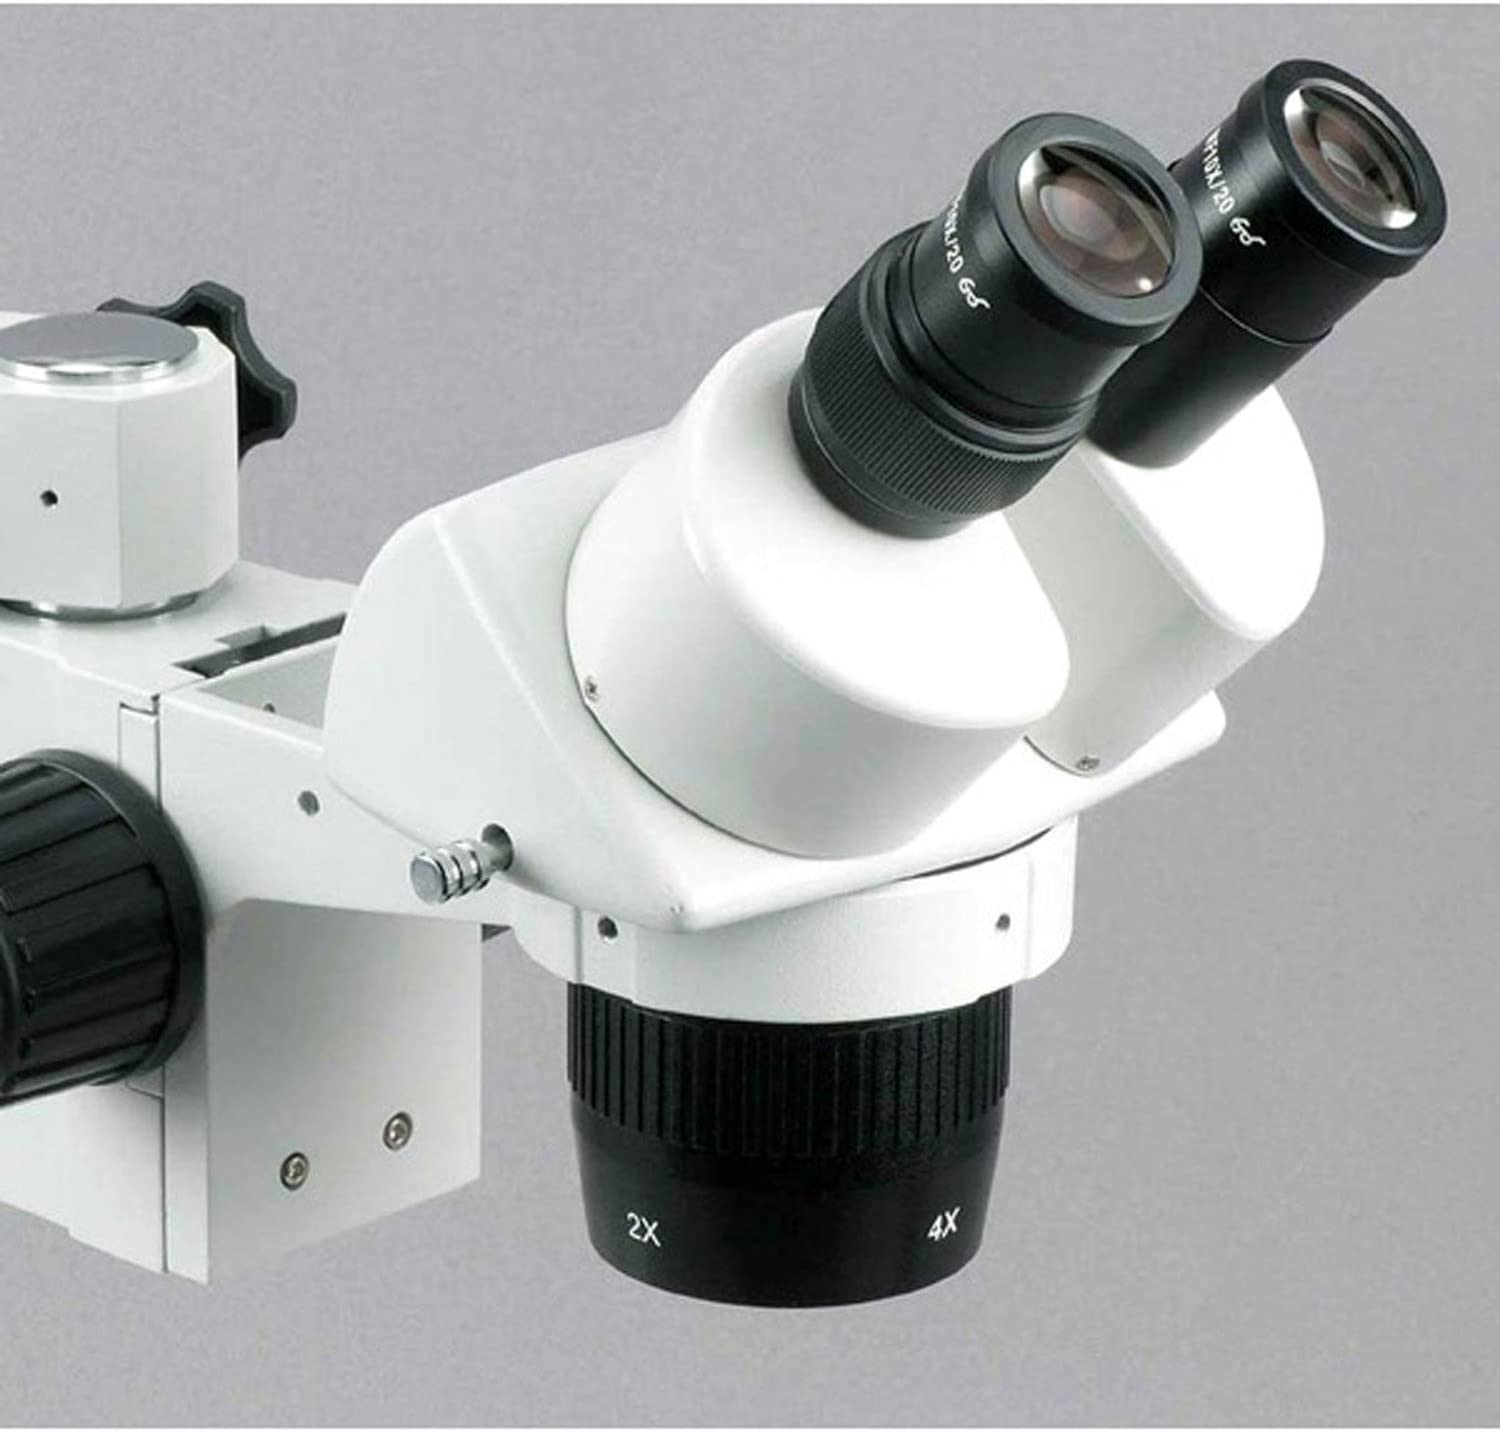 10X and 30X Magnification Single-Arm Boom Stand AmScope SW-3B13 Binocular Stereo Microscope WH10x Eyepieces 1X//3X Objective